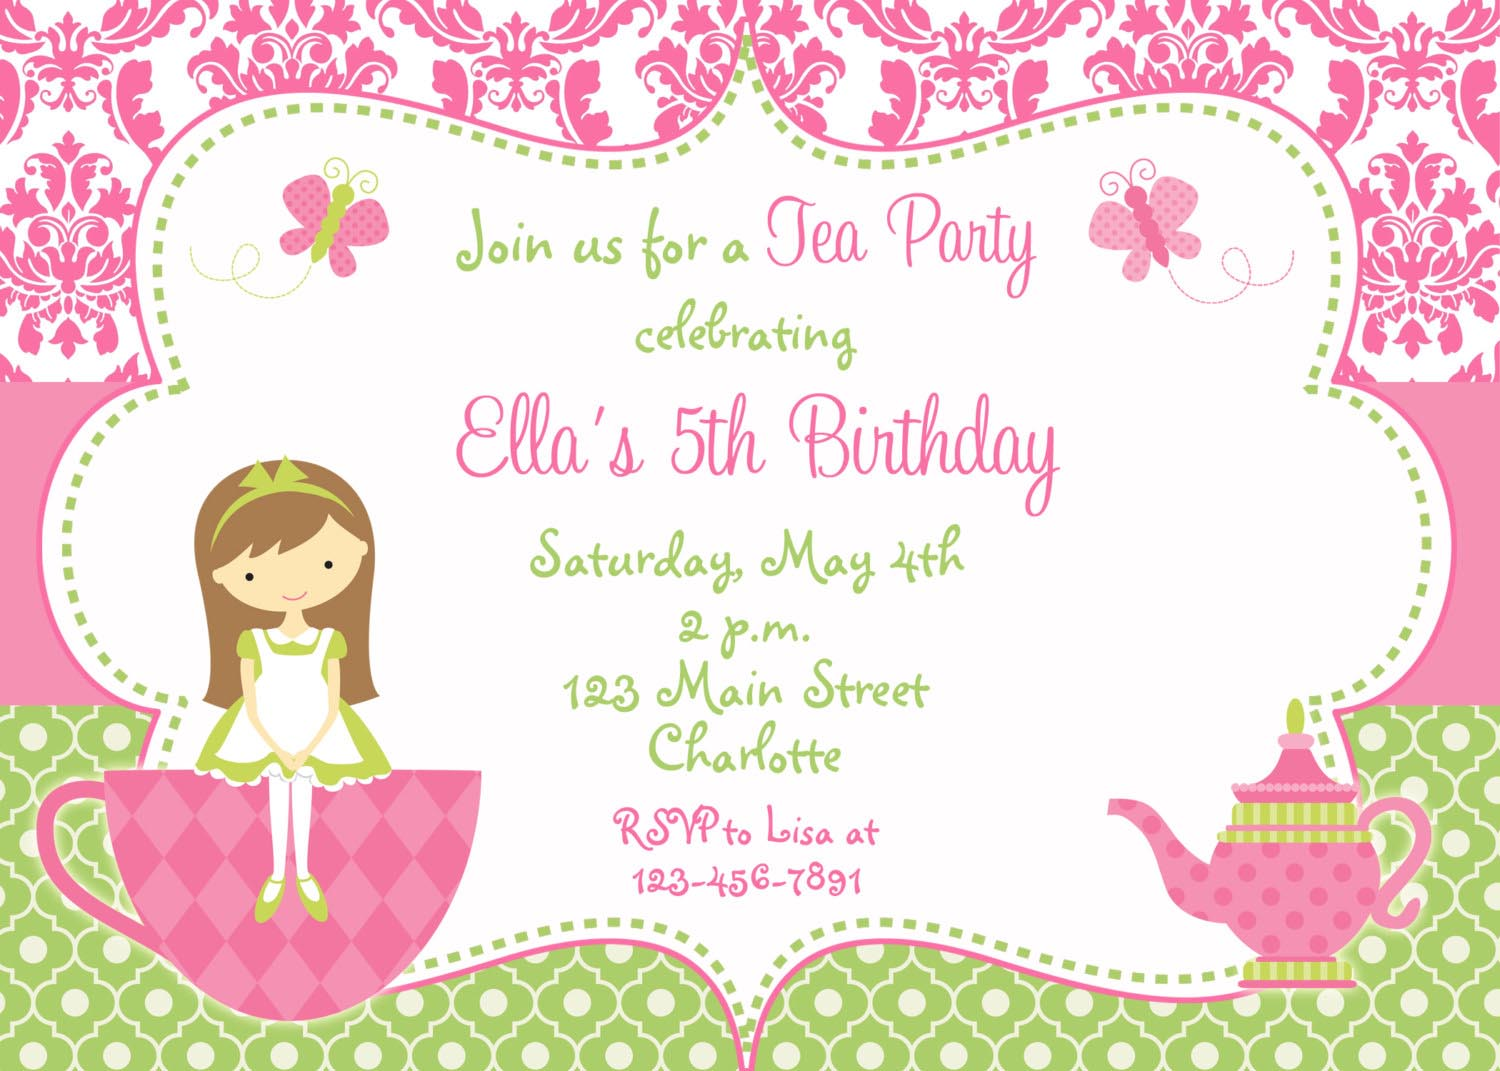 fairy princess party invitations home party ideas princess party invitations princess tea party invitations